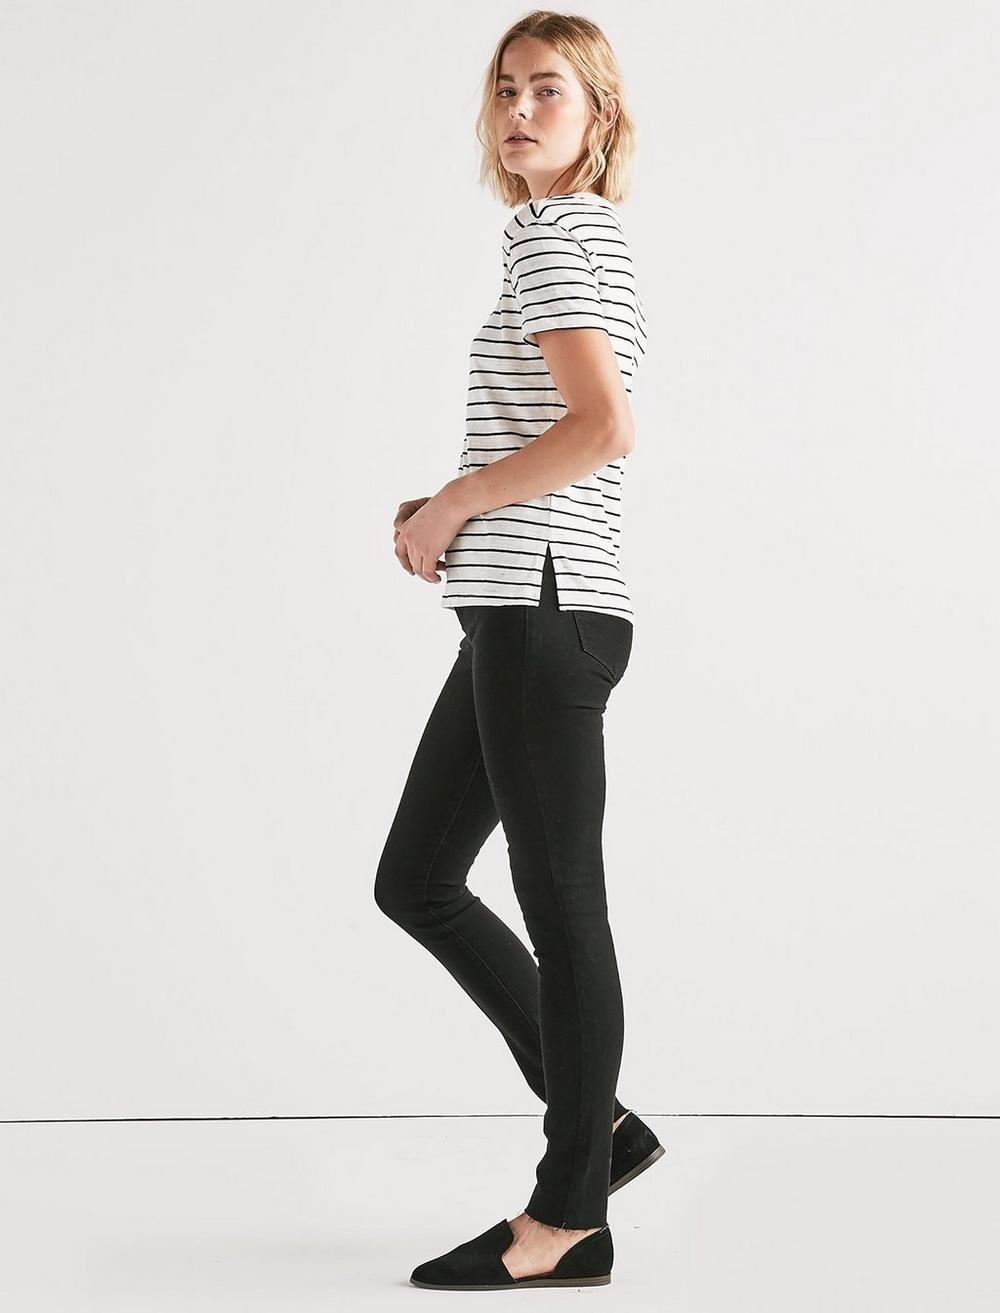 THE ANGELES V NECK STRIPED TEE., image 2